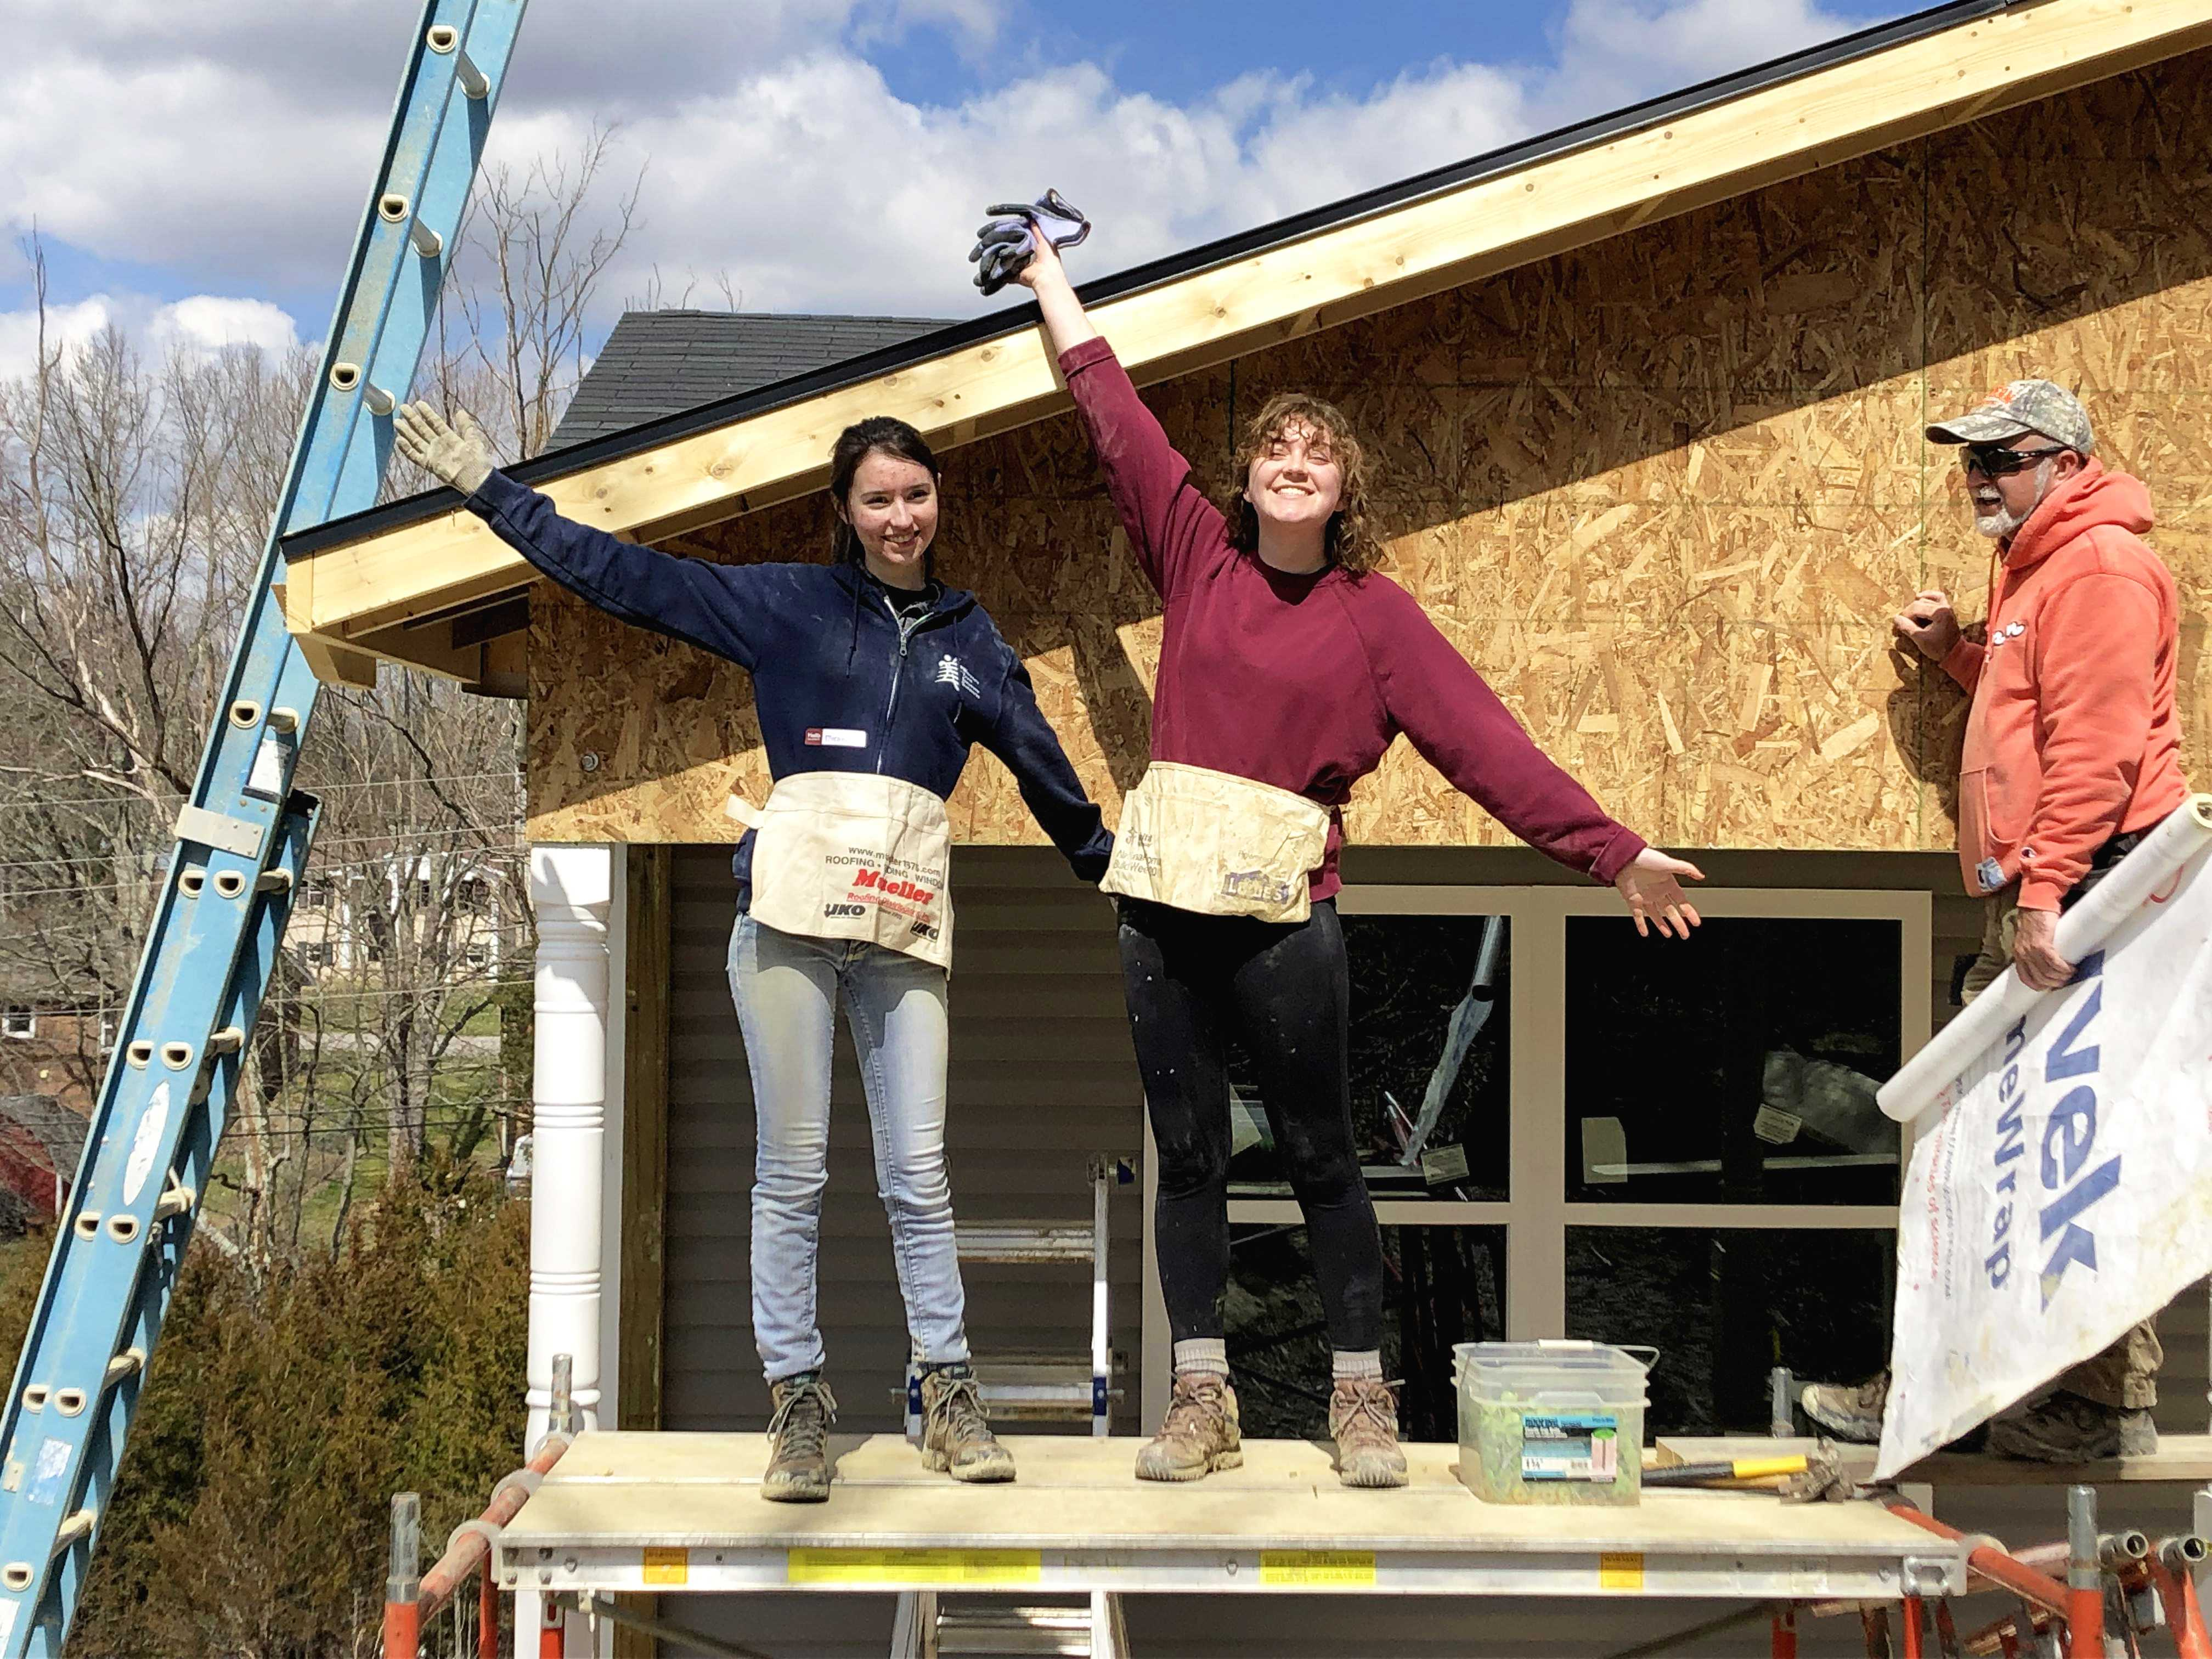 Mac students build house with Habitat for Humanity in Berea, KY